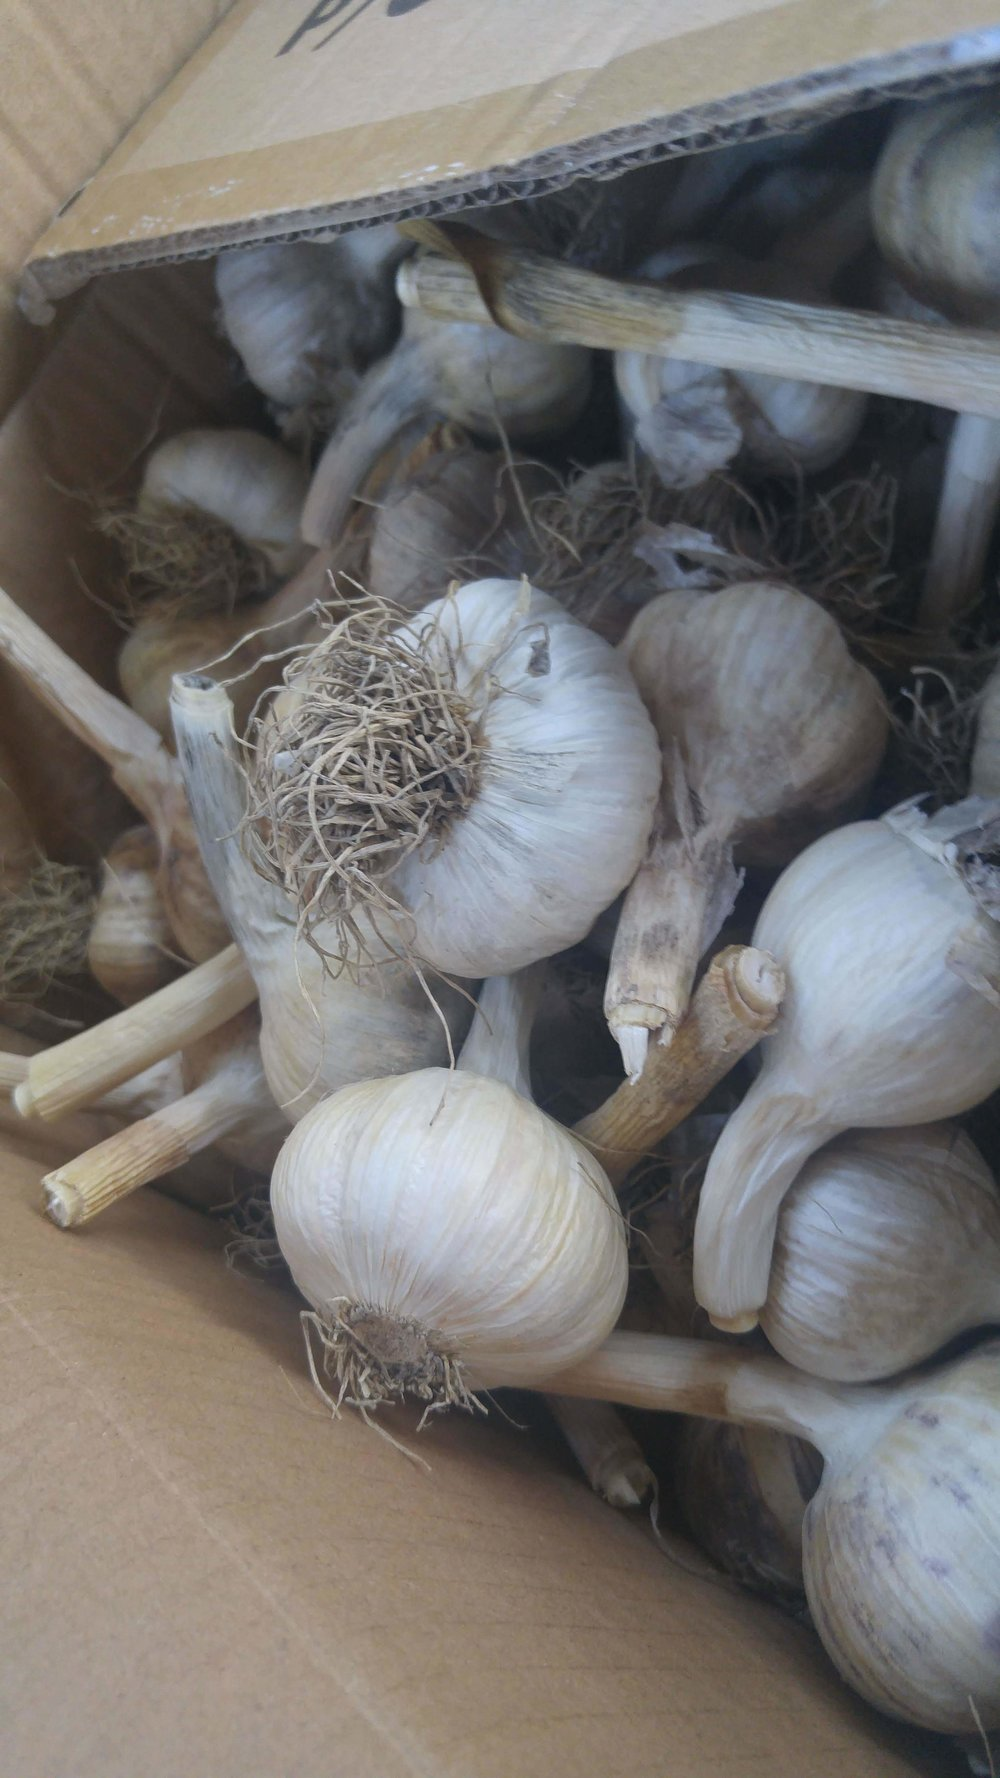 80lbs of a variety of garlic known as Music. It grows well in Canadian climates.